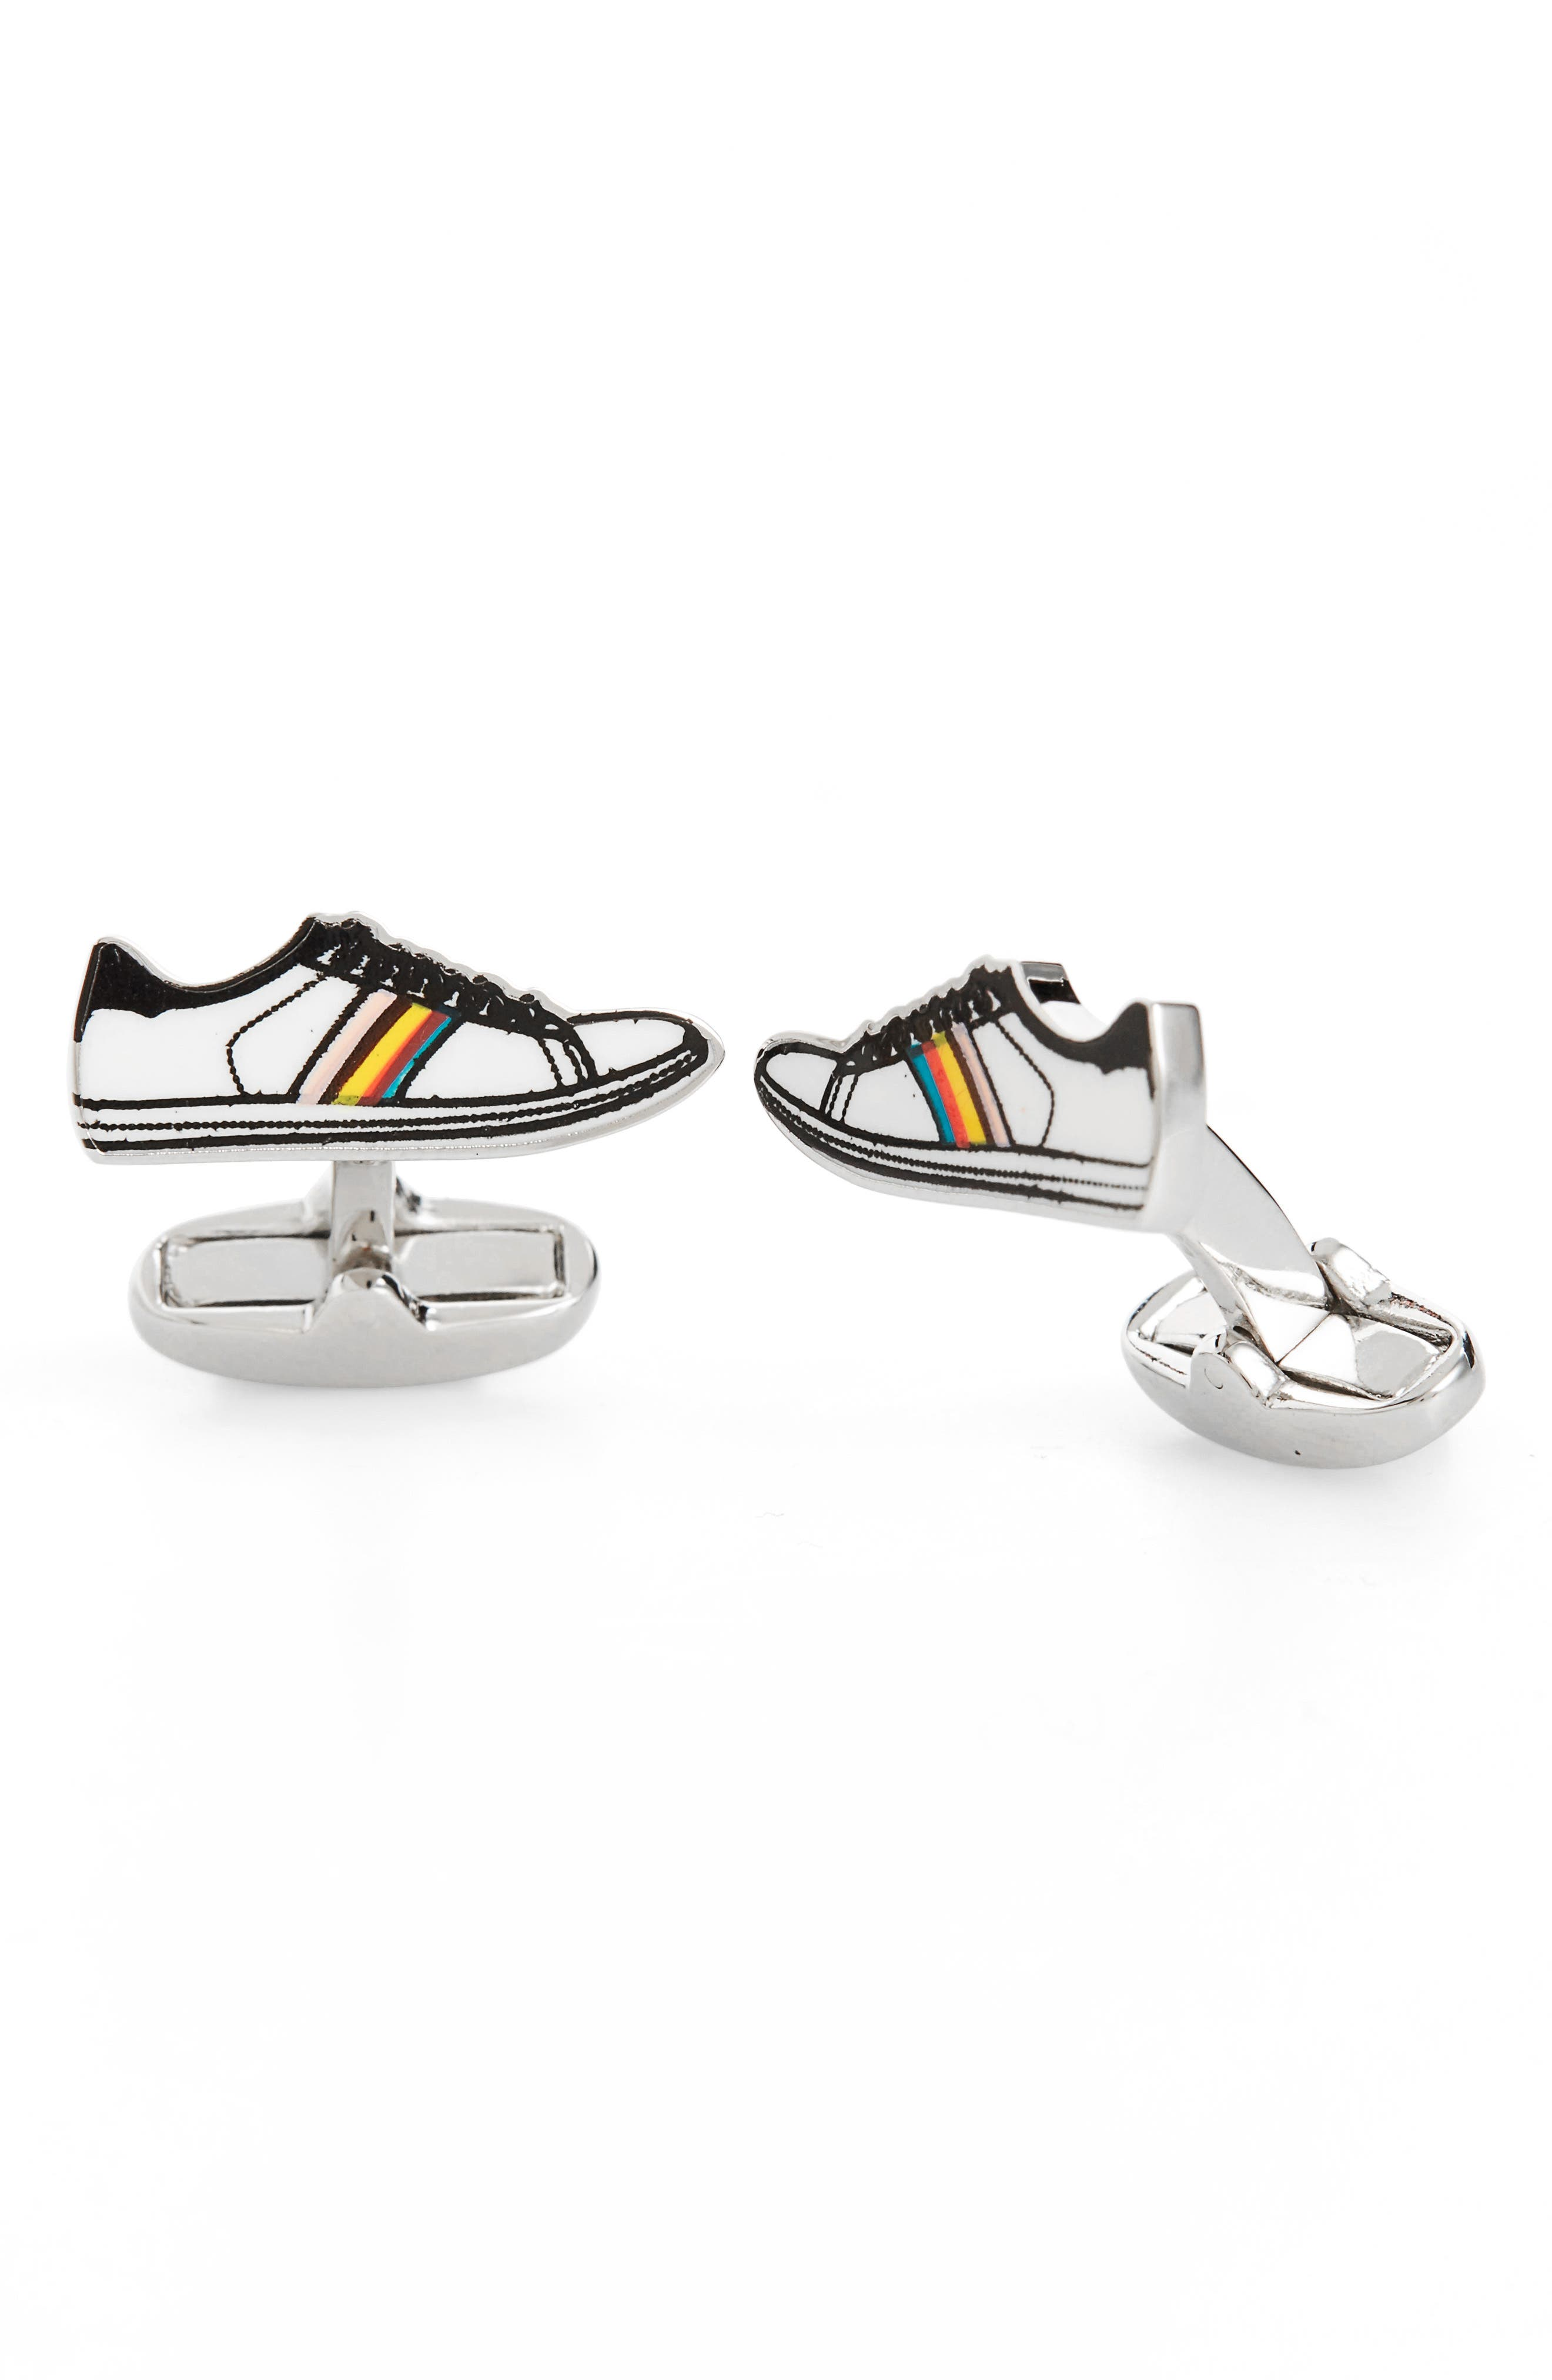 Alternate Image 1 Selected - Paul Smith Trainer Cuff Links